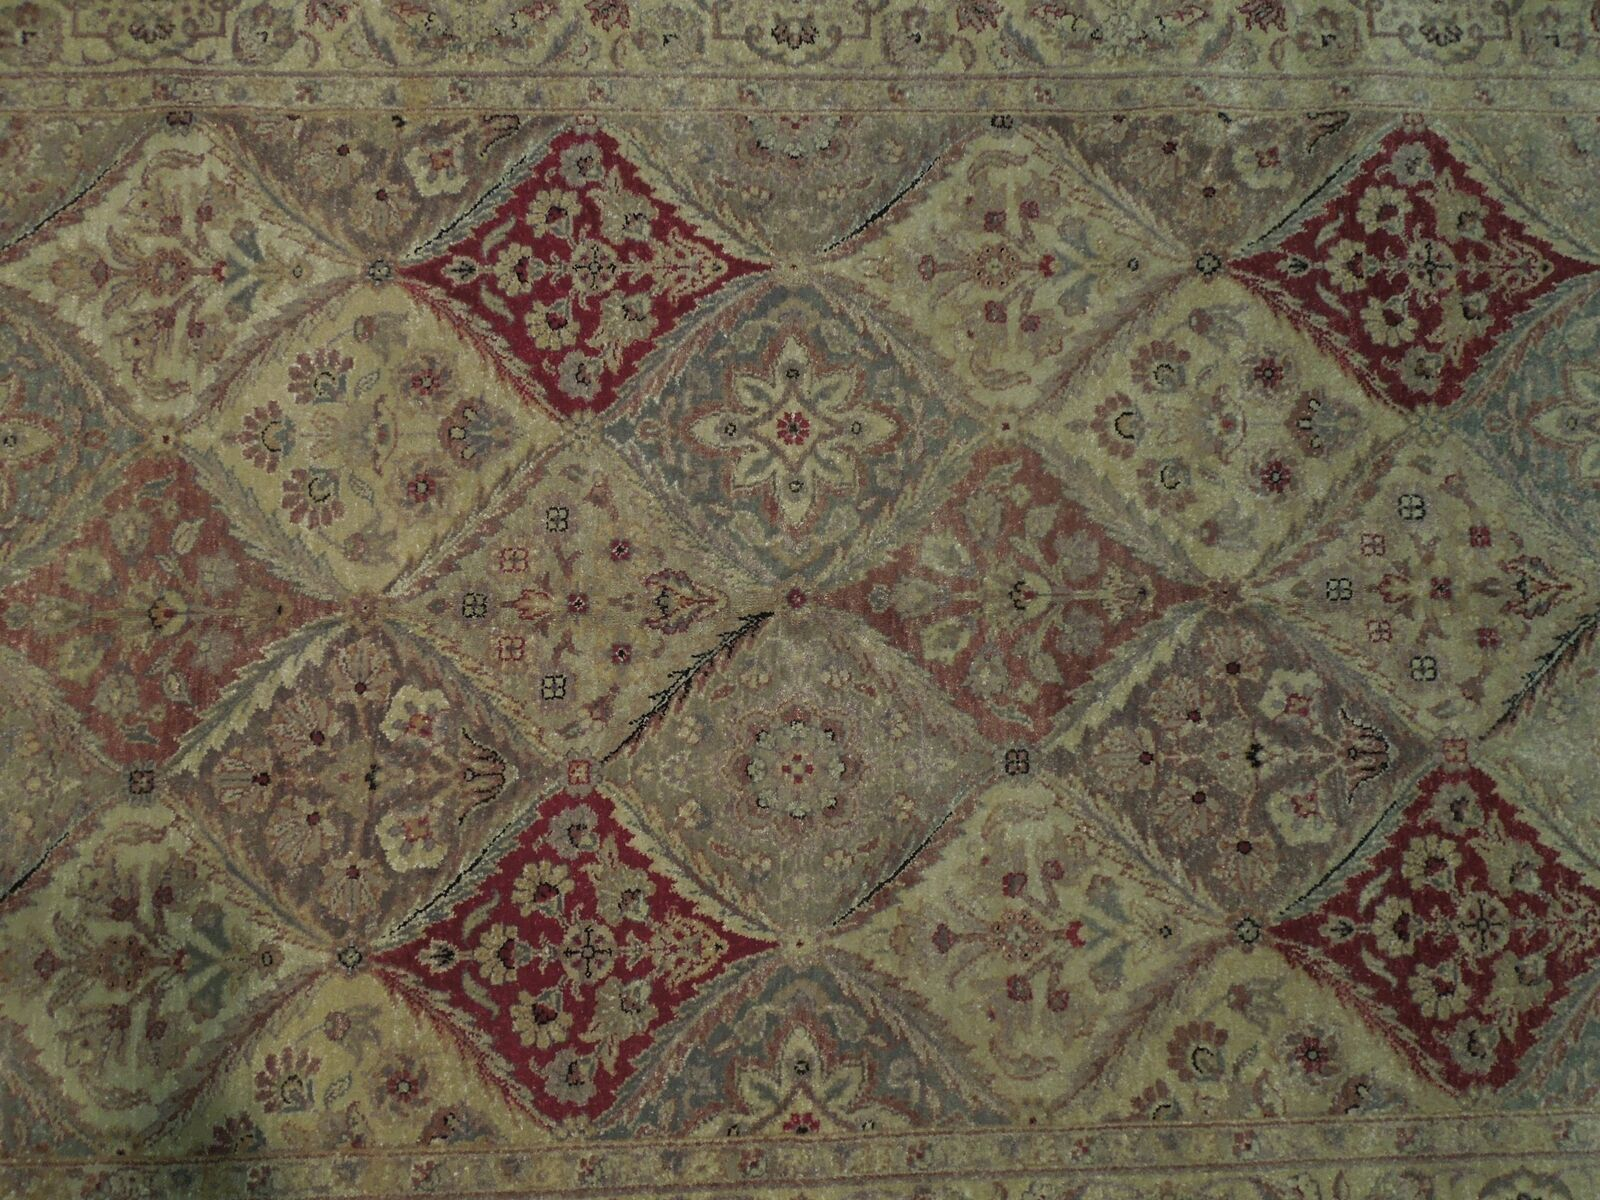 5x7 Multi-Color Oushak Wool Handmade Checked All-Over Transitional Area Rug image 6